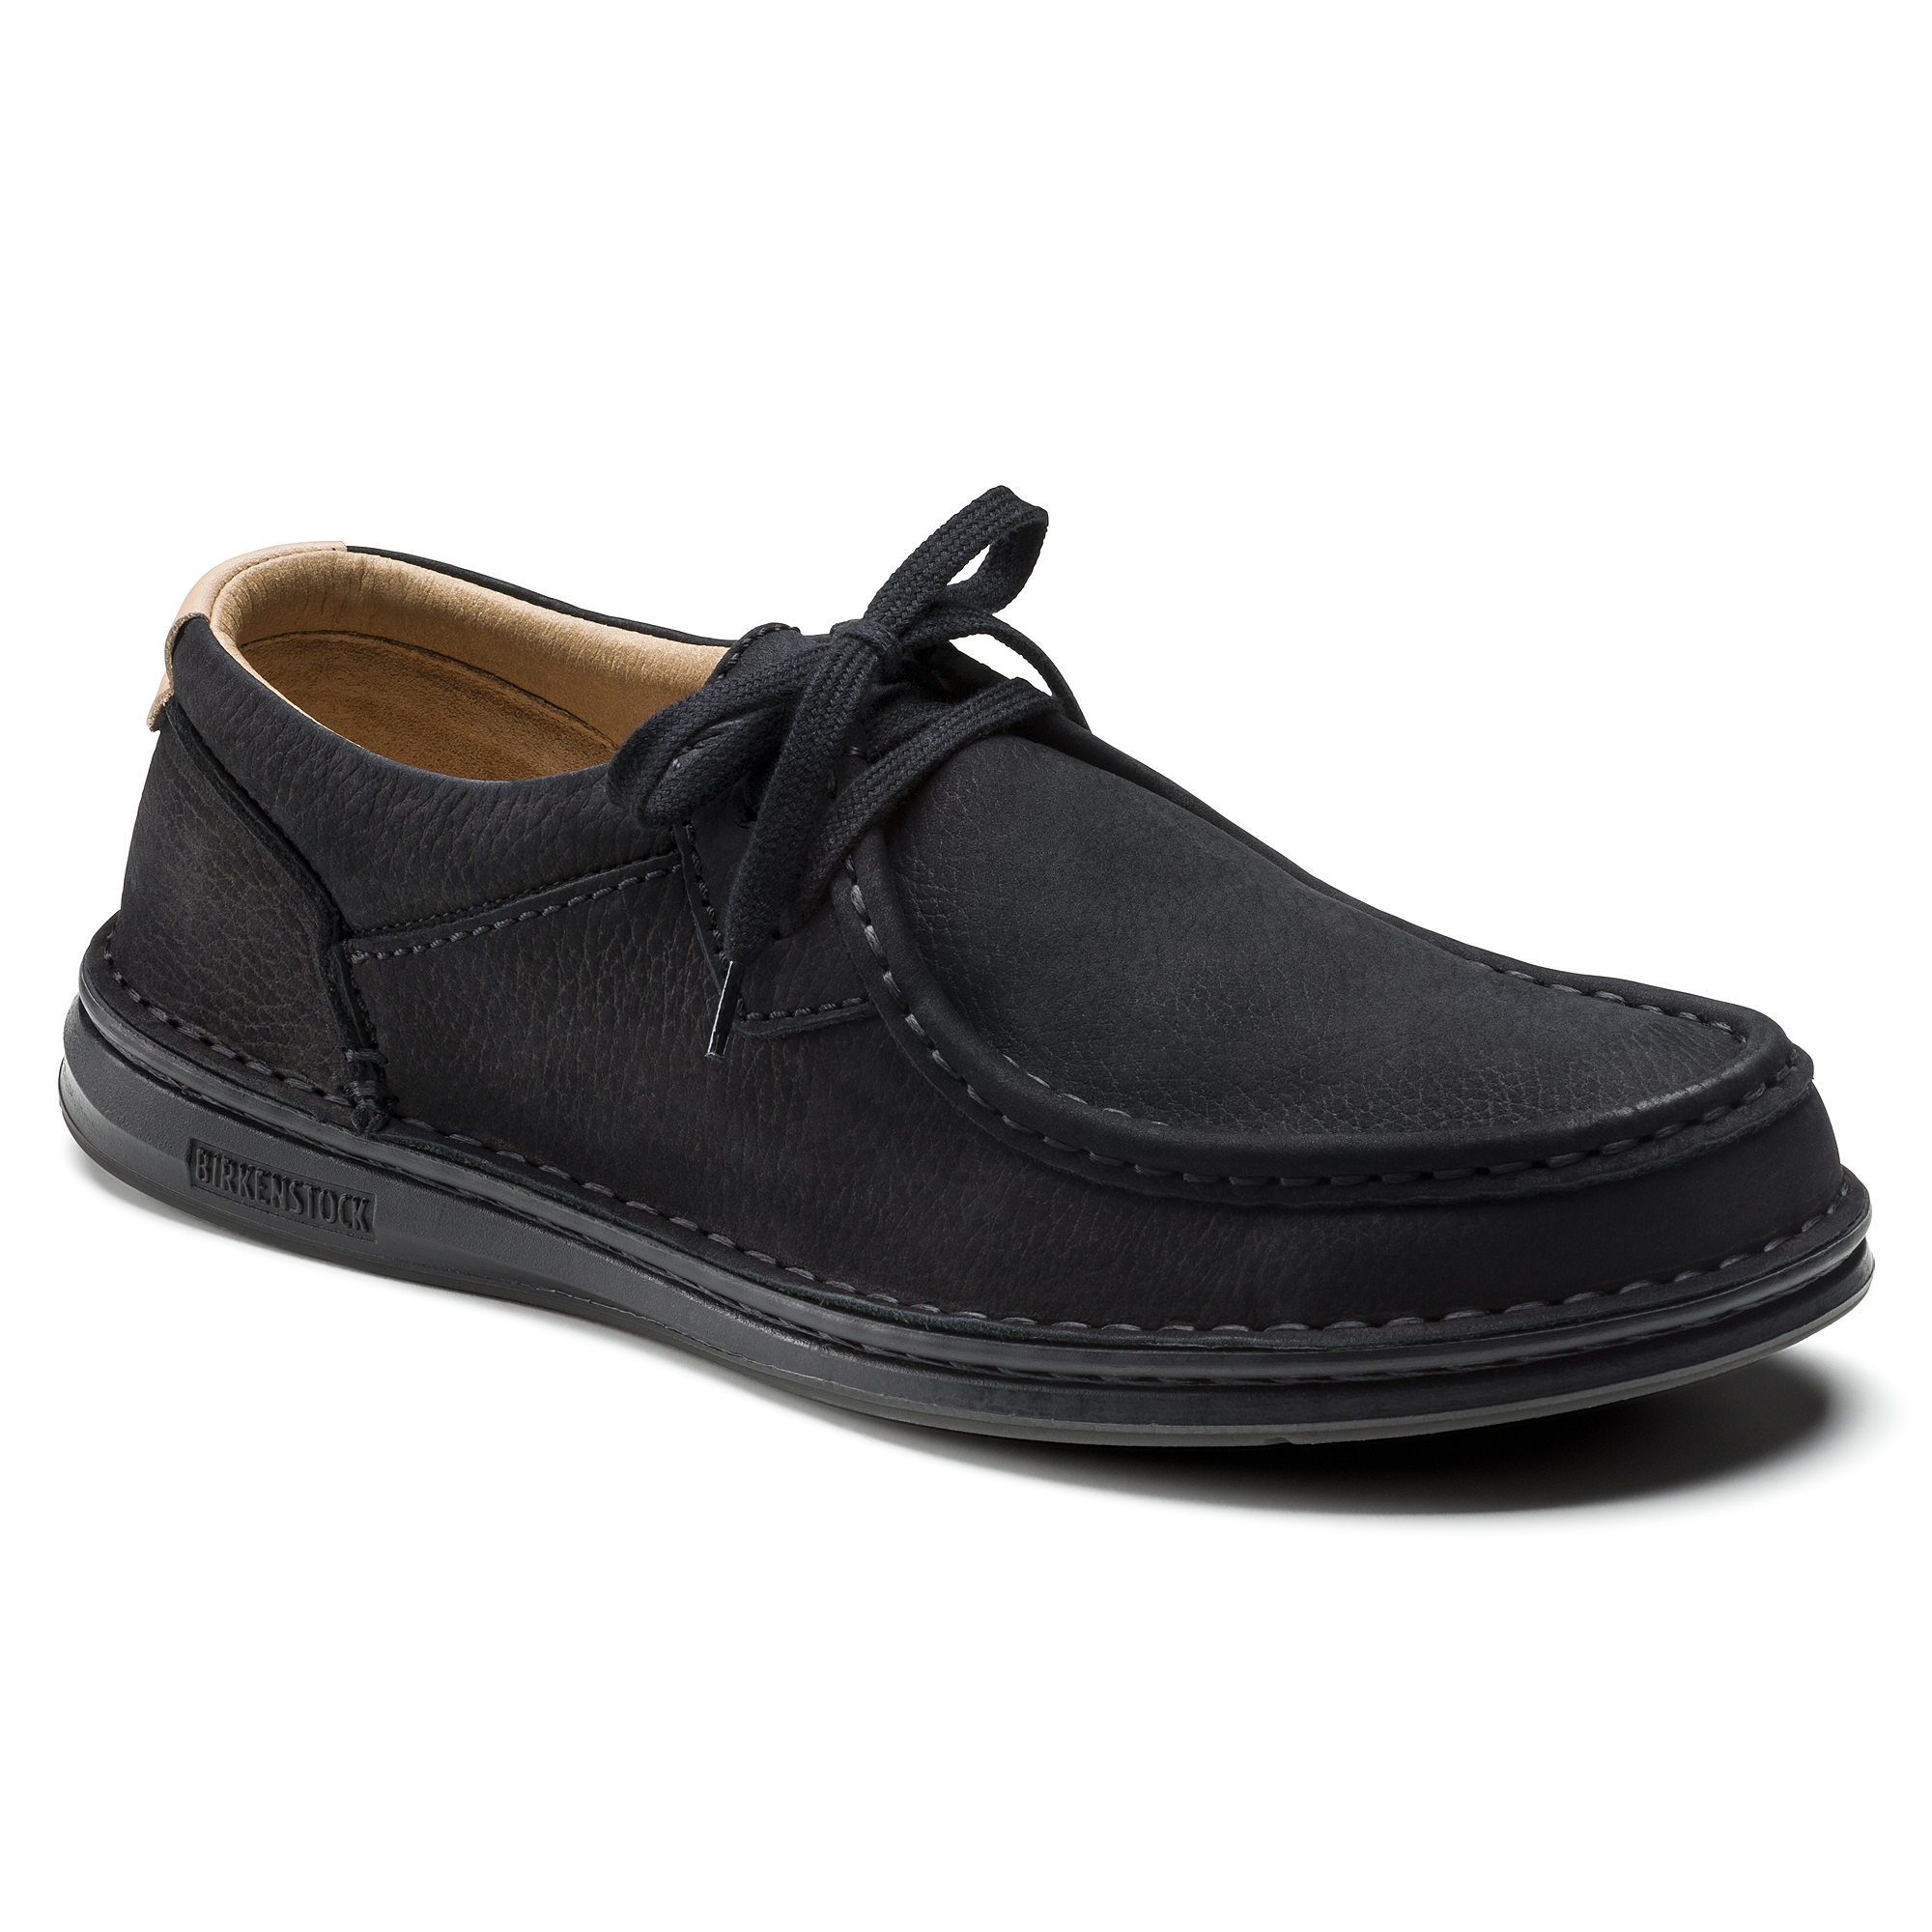 Nubuck Leather Shoes Online